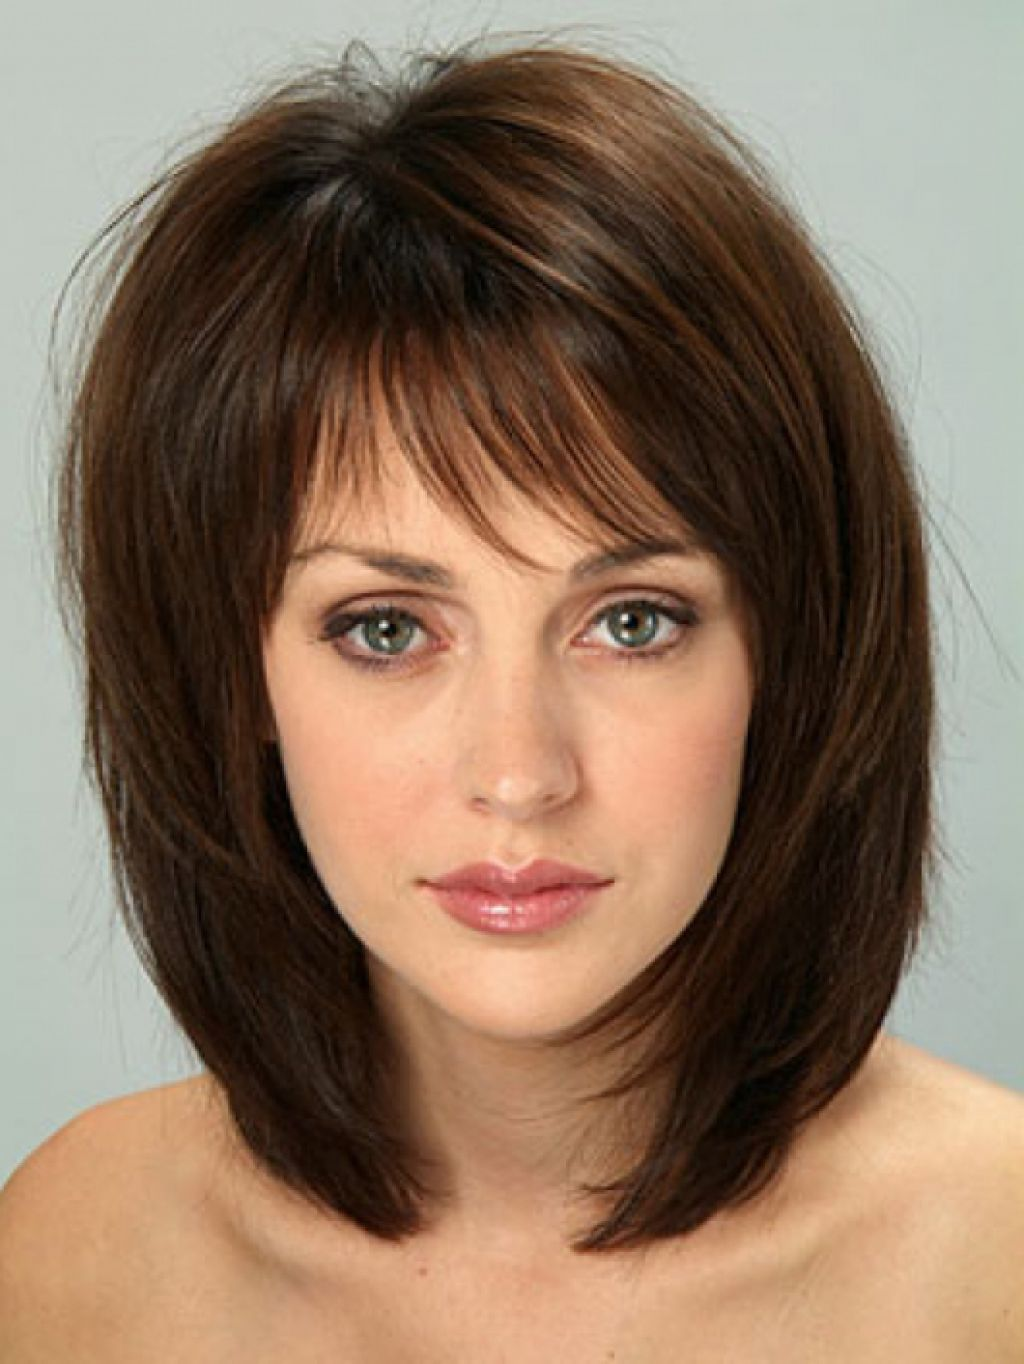 10 Amazing And Different Mid Length Haircuts You Will Totally Love